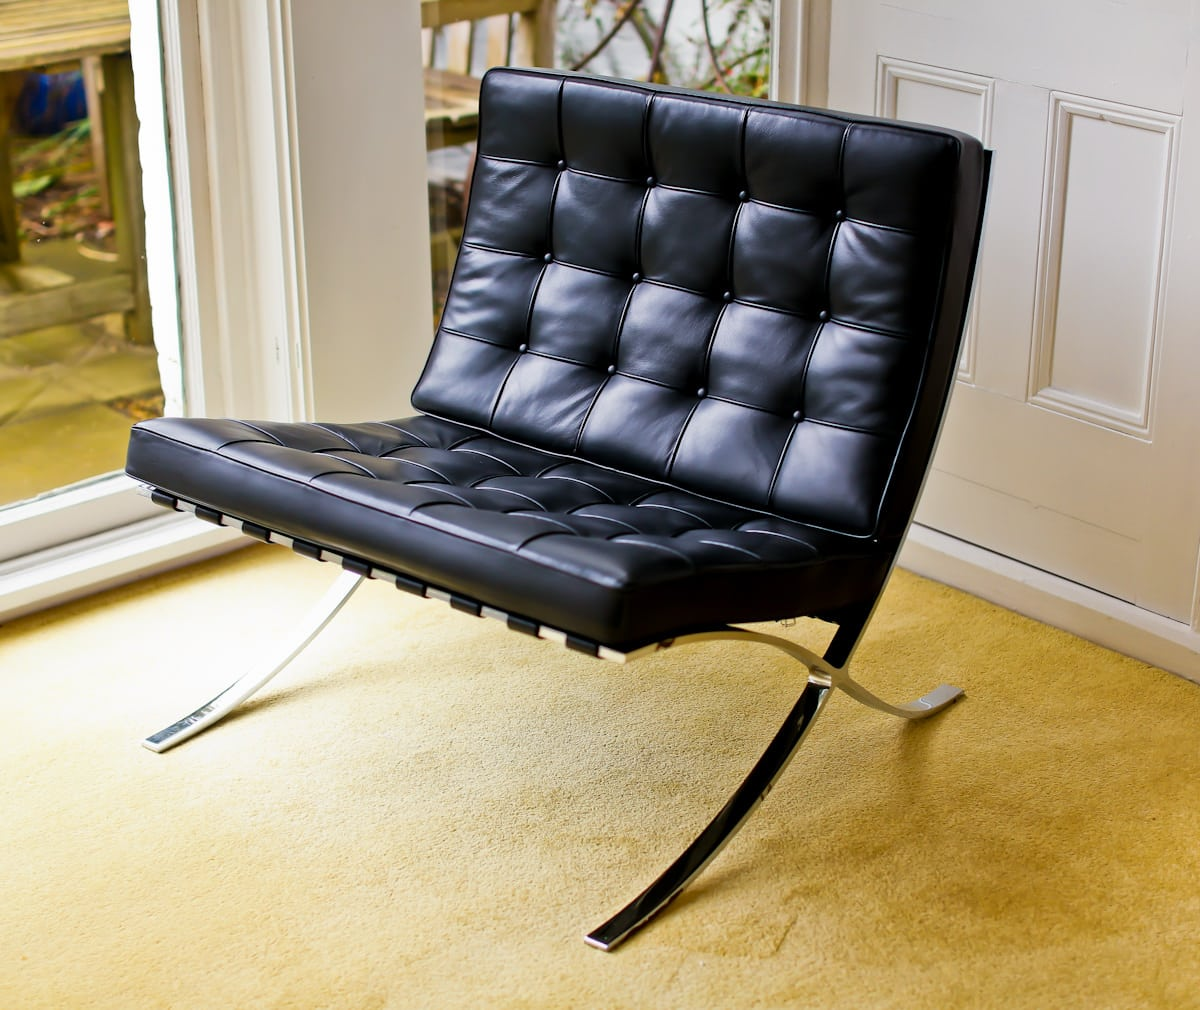 Barcelona chair by Knoll in black leather